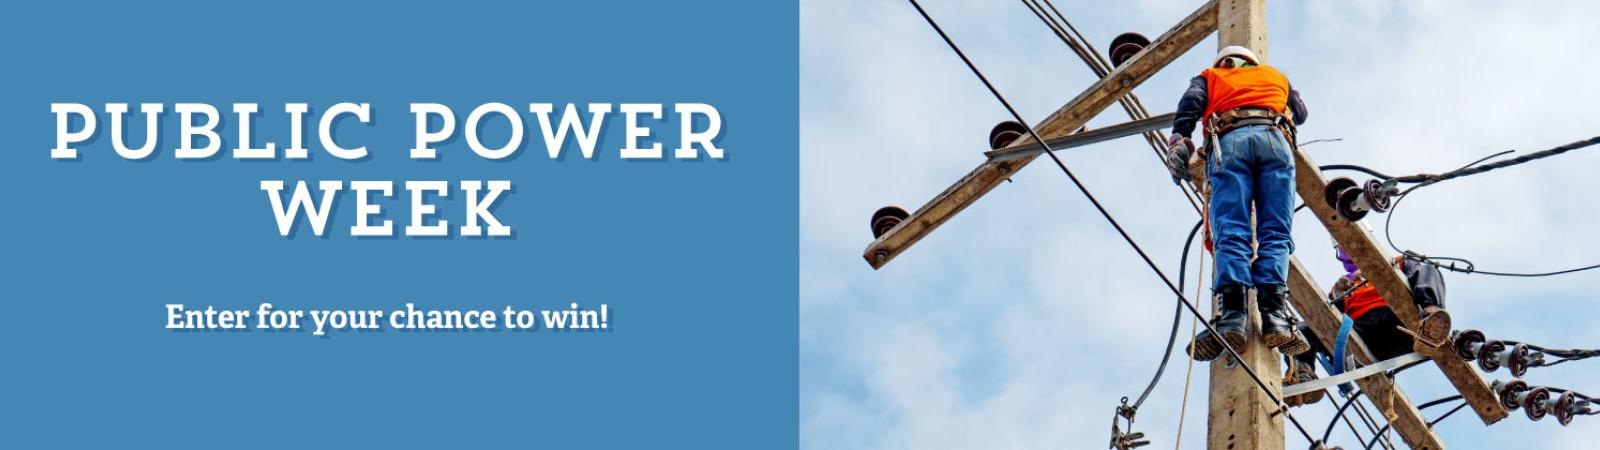 lineman working with text: Public Power Week, enter to win